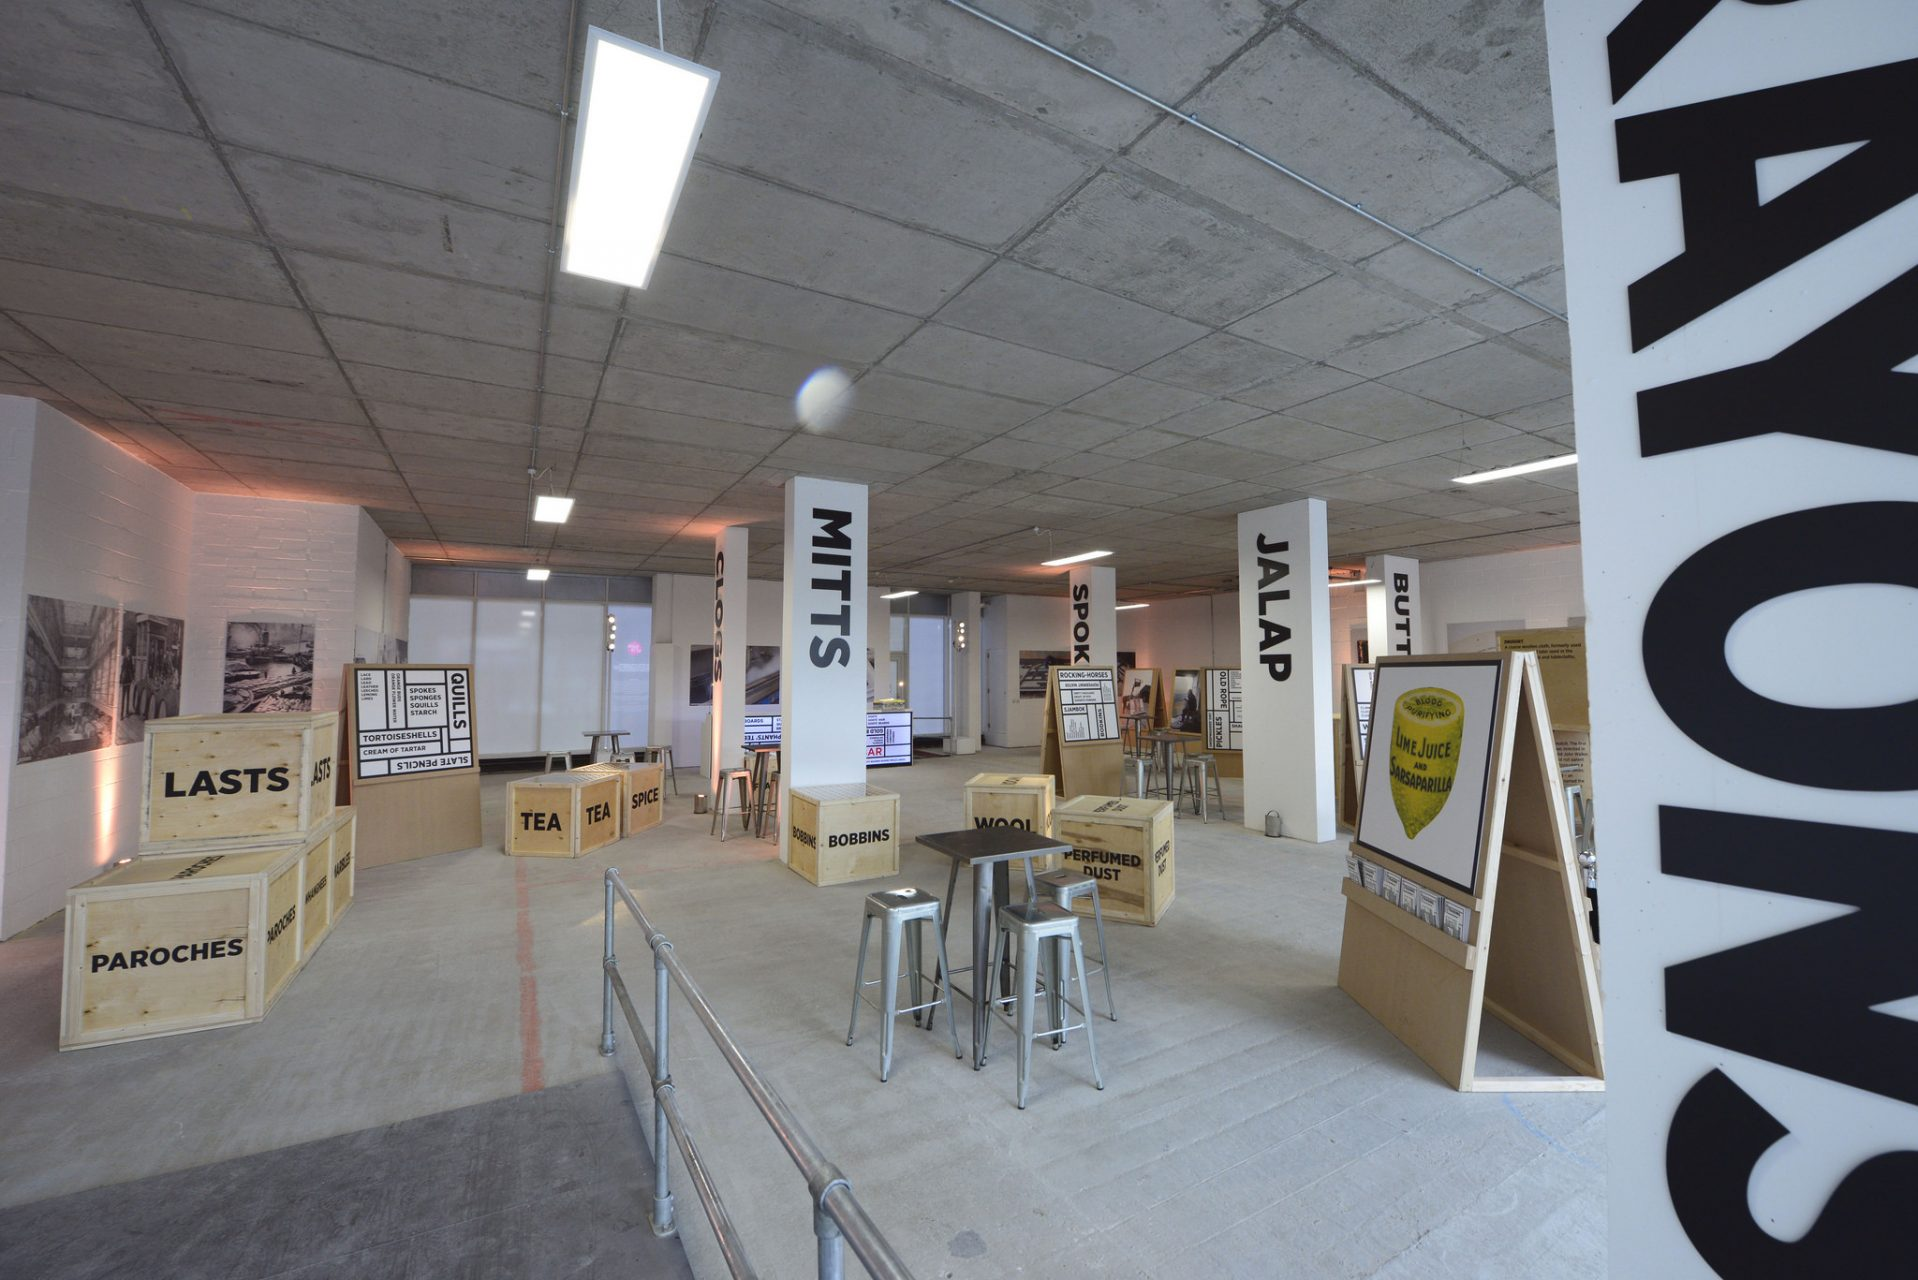 Event space/gallery style fit out using fret-cut stencils on cargo crates for Trading Words by Octink